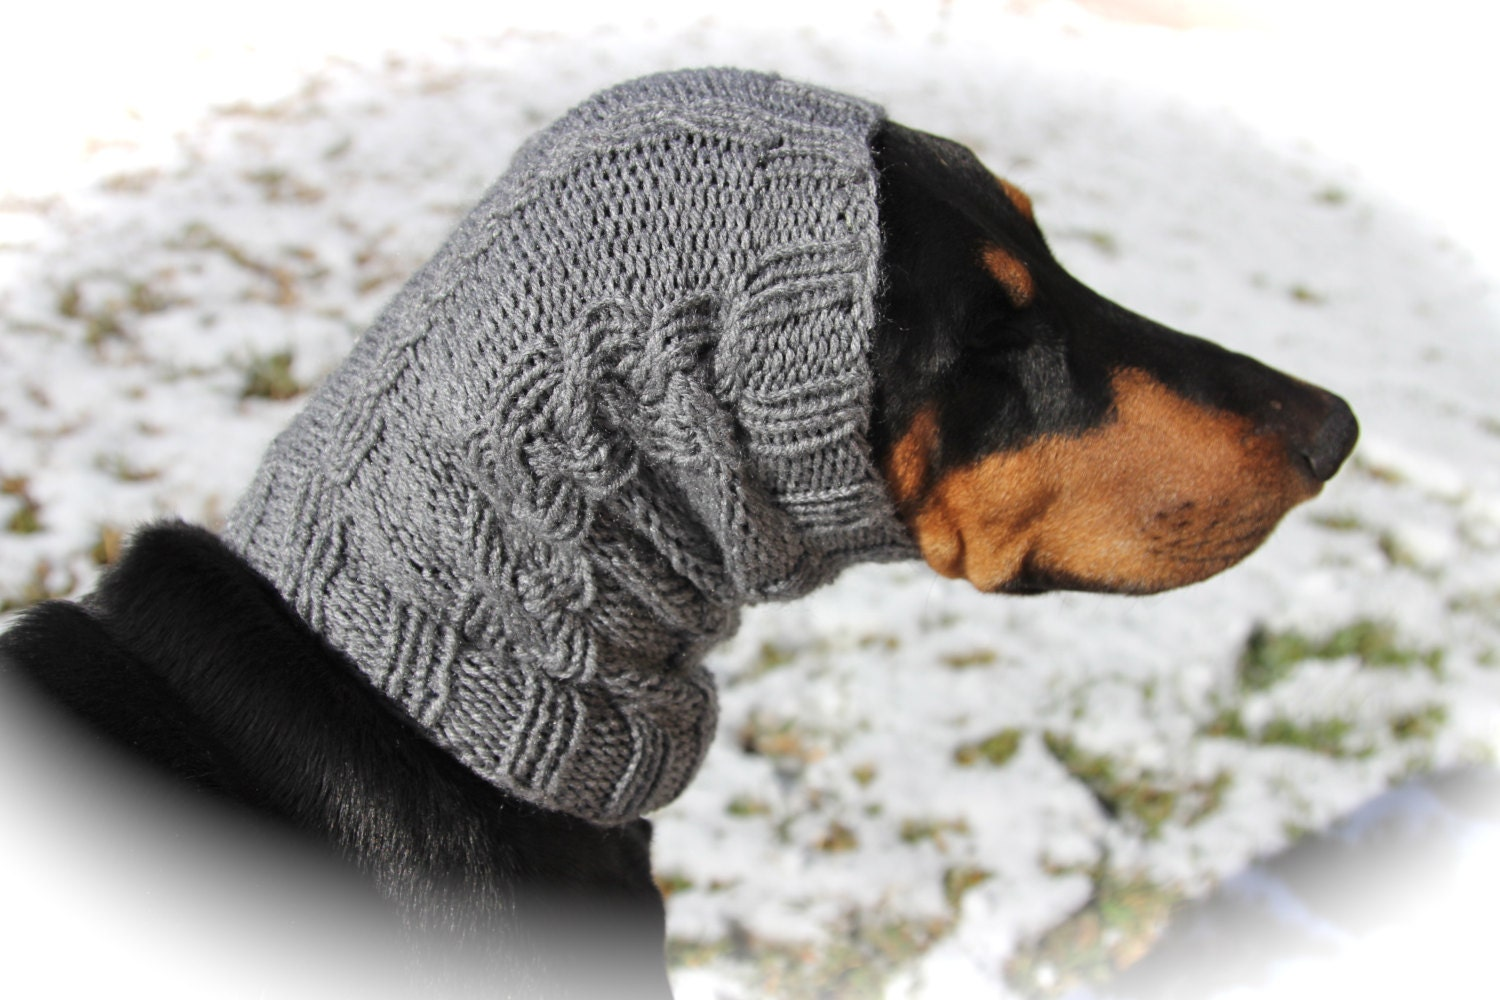 Snood Dog Knitting Pattern Wool And The Gang : Hand knitted Snood for Dog classic cable pattern by COZYHORSE